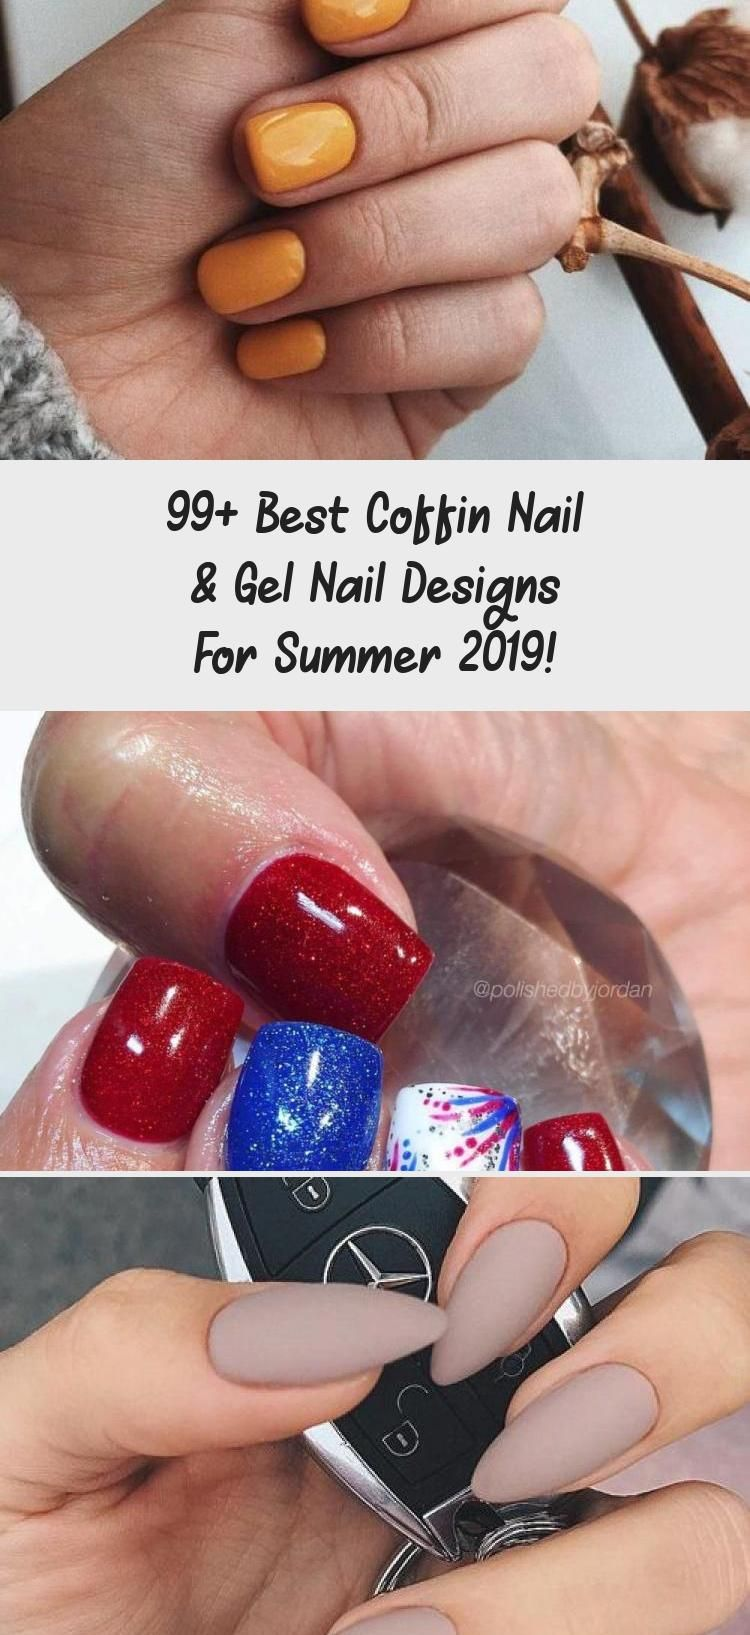 99+ Best Coffin Nail & Gel Nail Designs For Summer 2019!